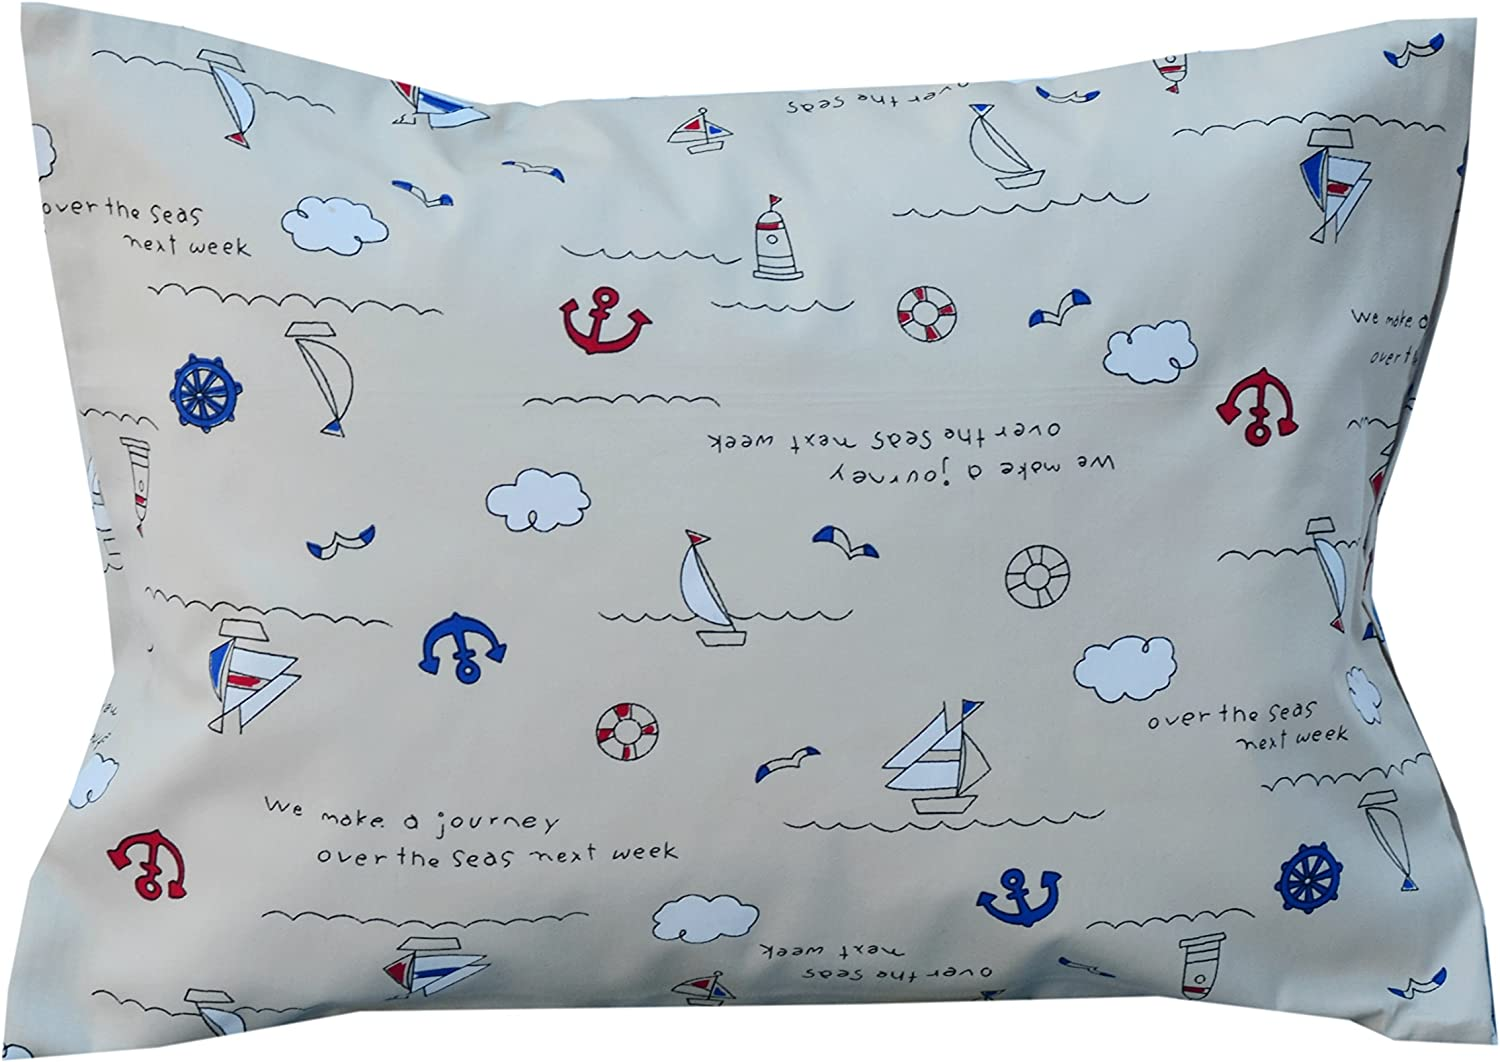 2cloud9 Toddler Pillow with 100% Cotton Cover. Made of 100% Natural Latex Rubber Foam